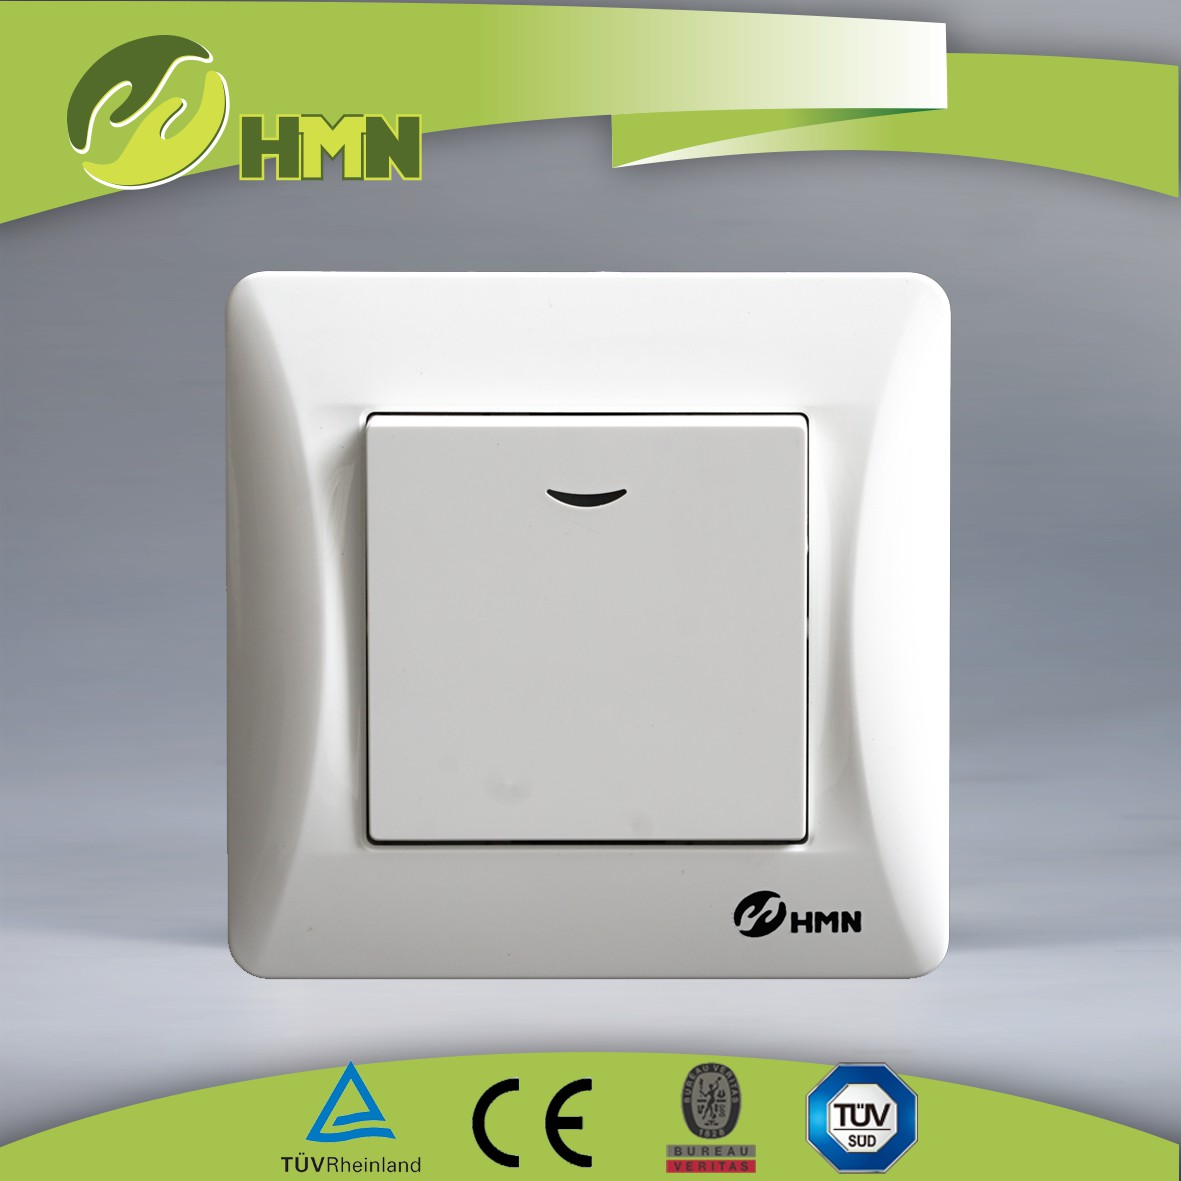 H111N/H112N   1gang 1way/2 way switch  W/N